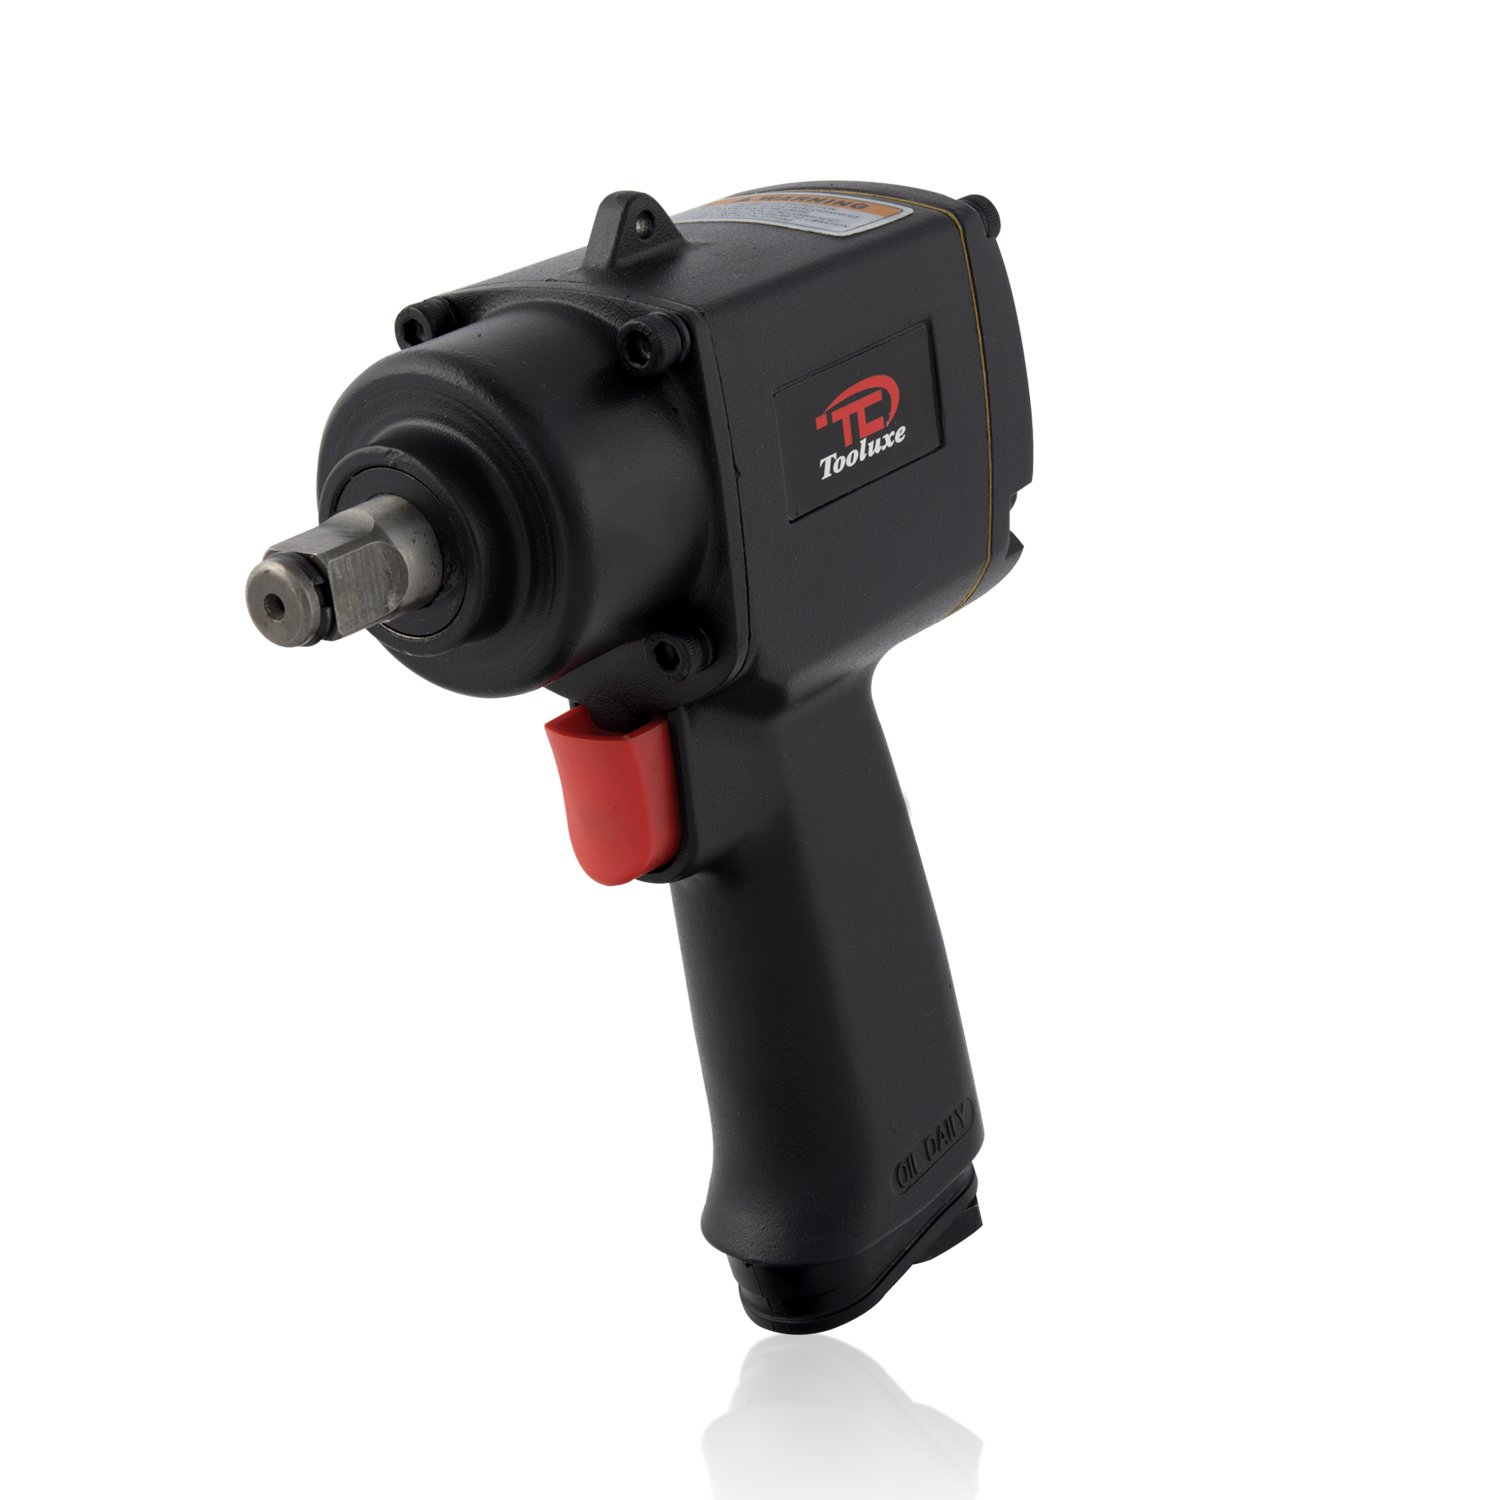 Tooluxe 31357L 1/2 Inch Square Drive Mini Air Impact Wrench | High Torque and Super Duty with Twin Hammer Mechanism